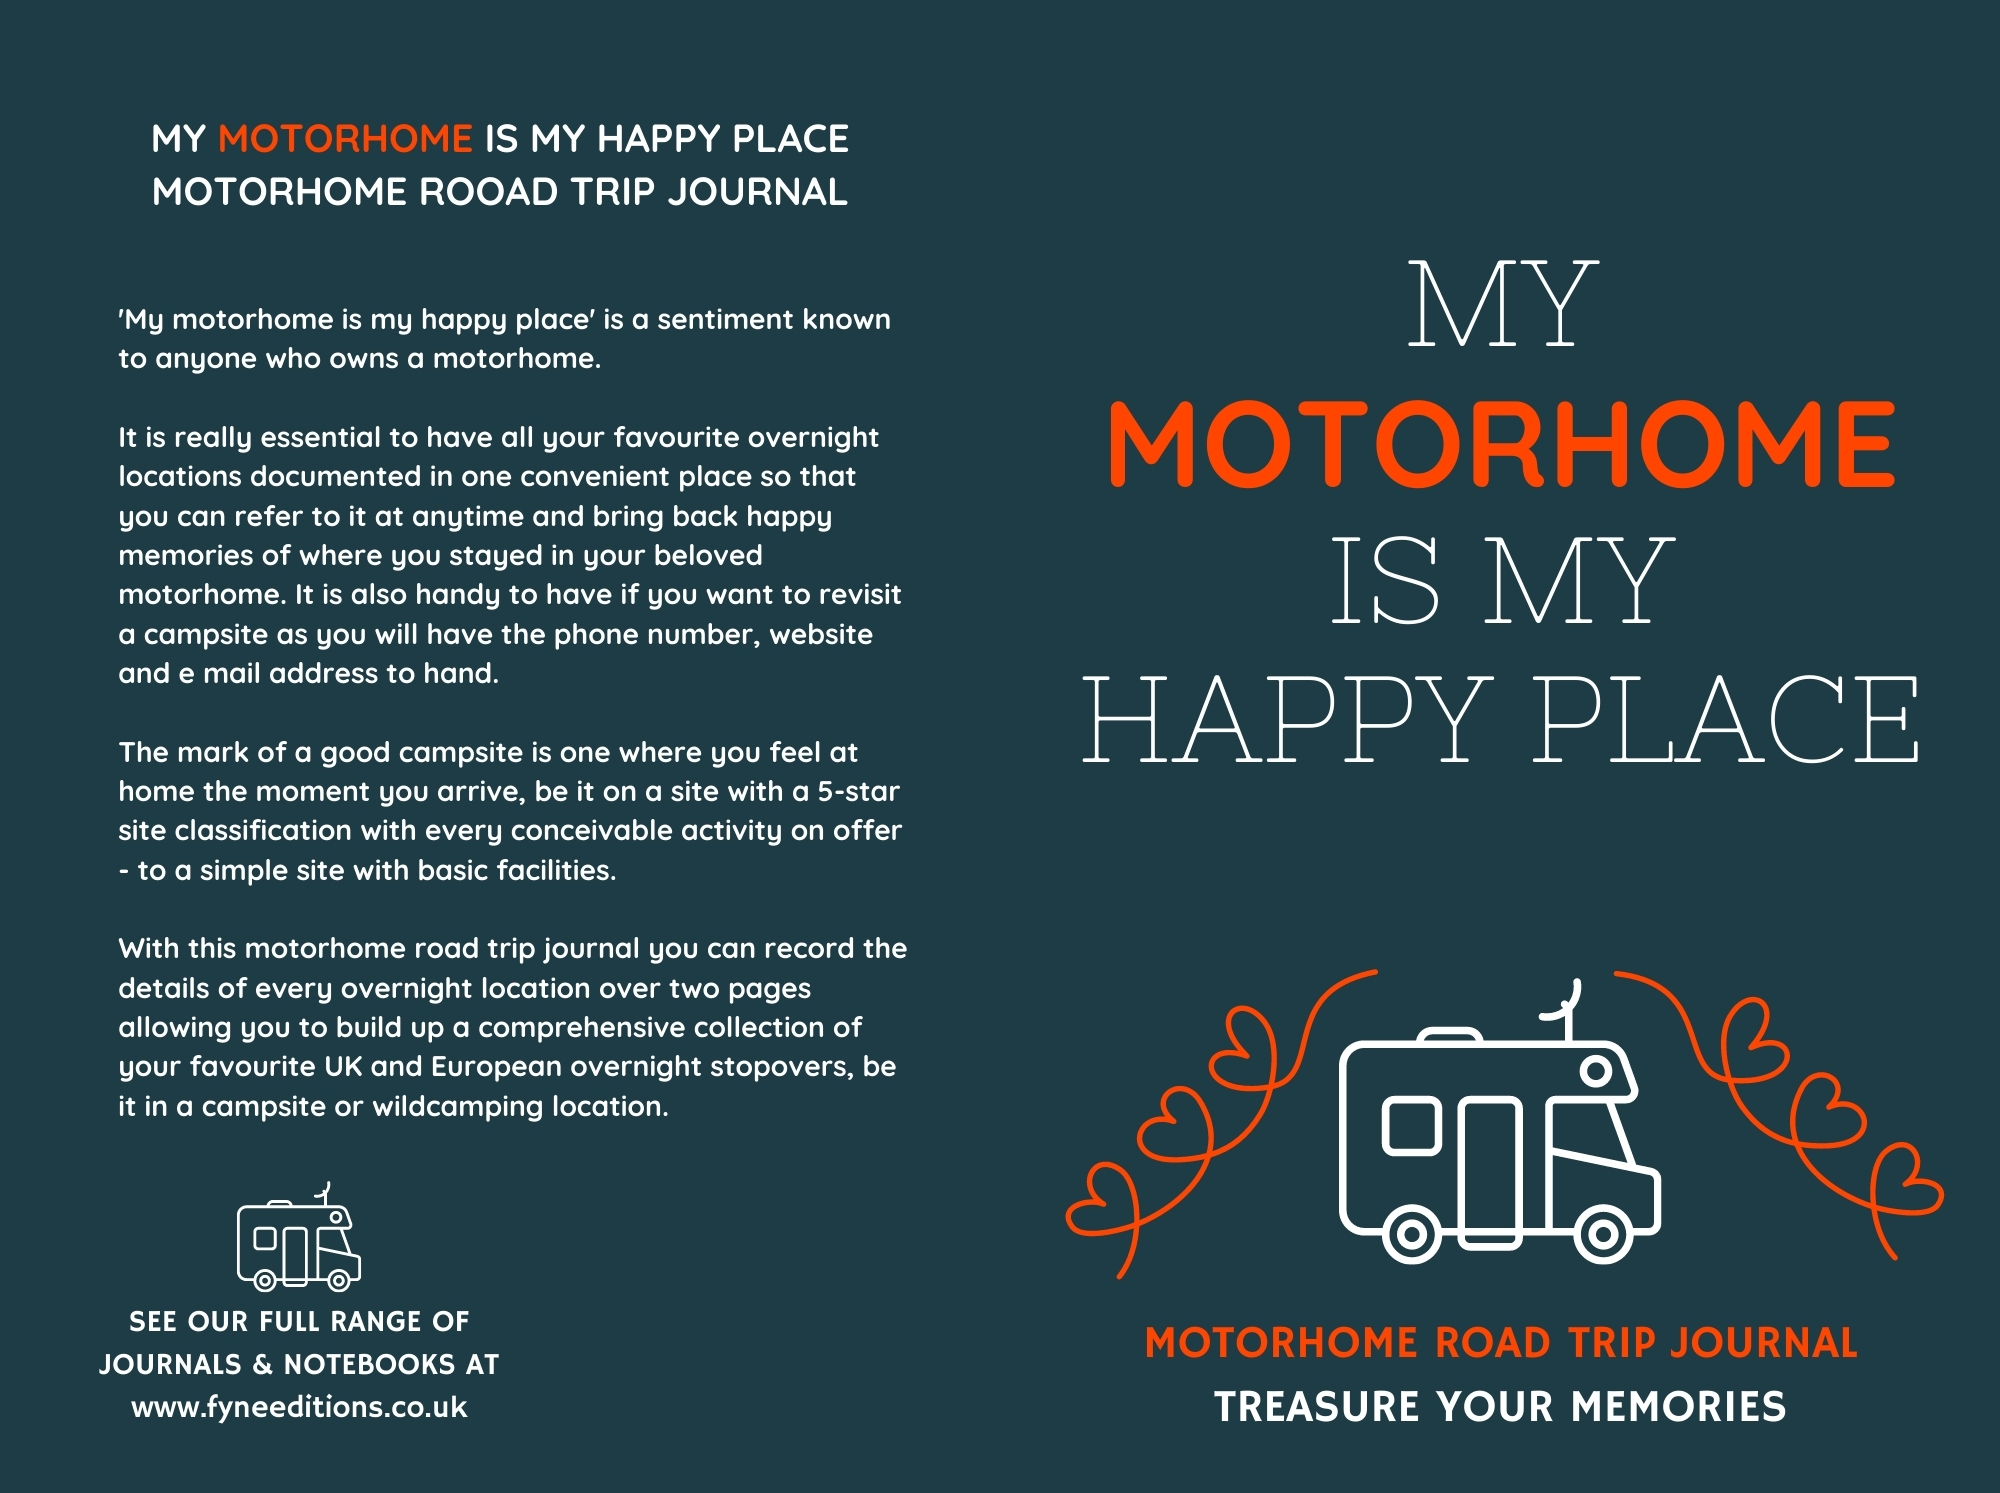 My Motorhome Is My Happy Place - Journal Cover